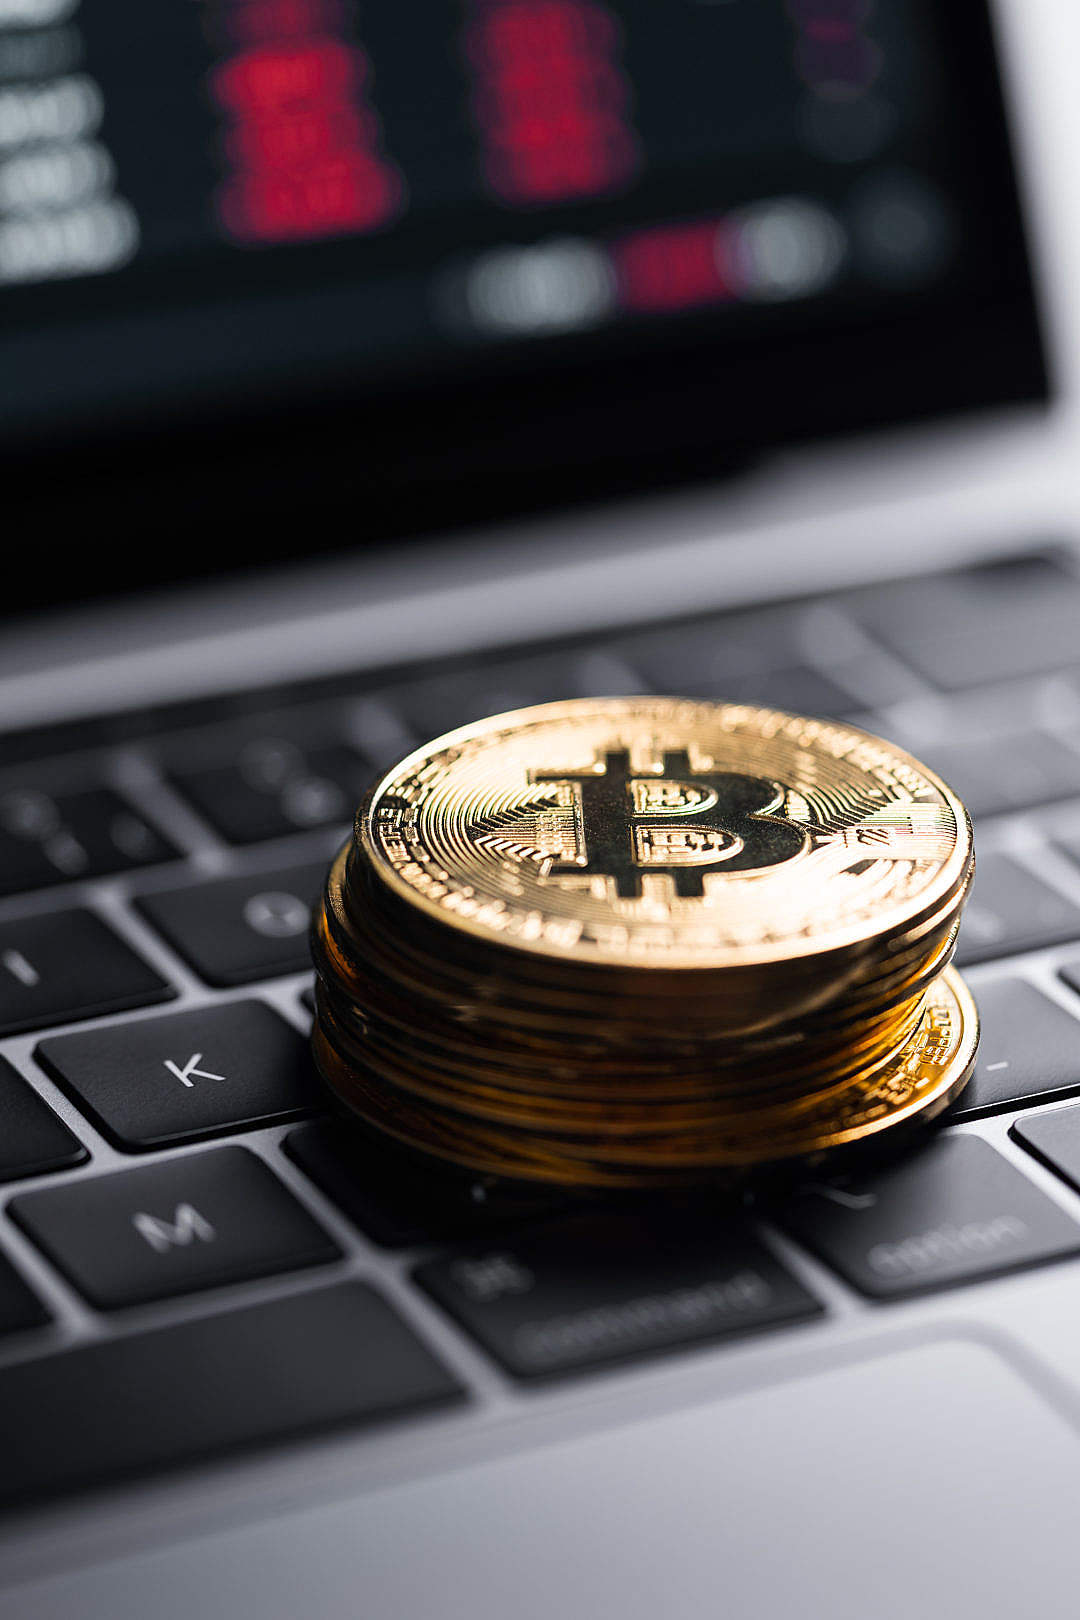 Download Golden Bitcoins on Laptop FREE Stock Photo